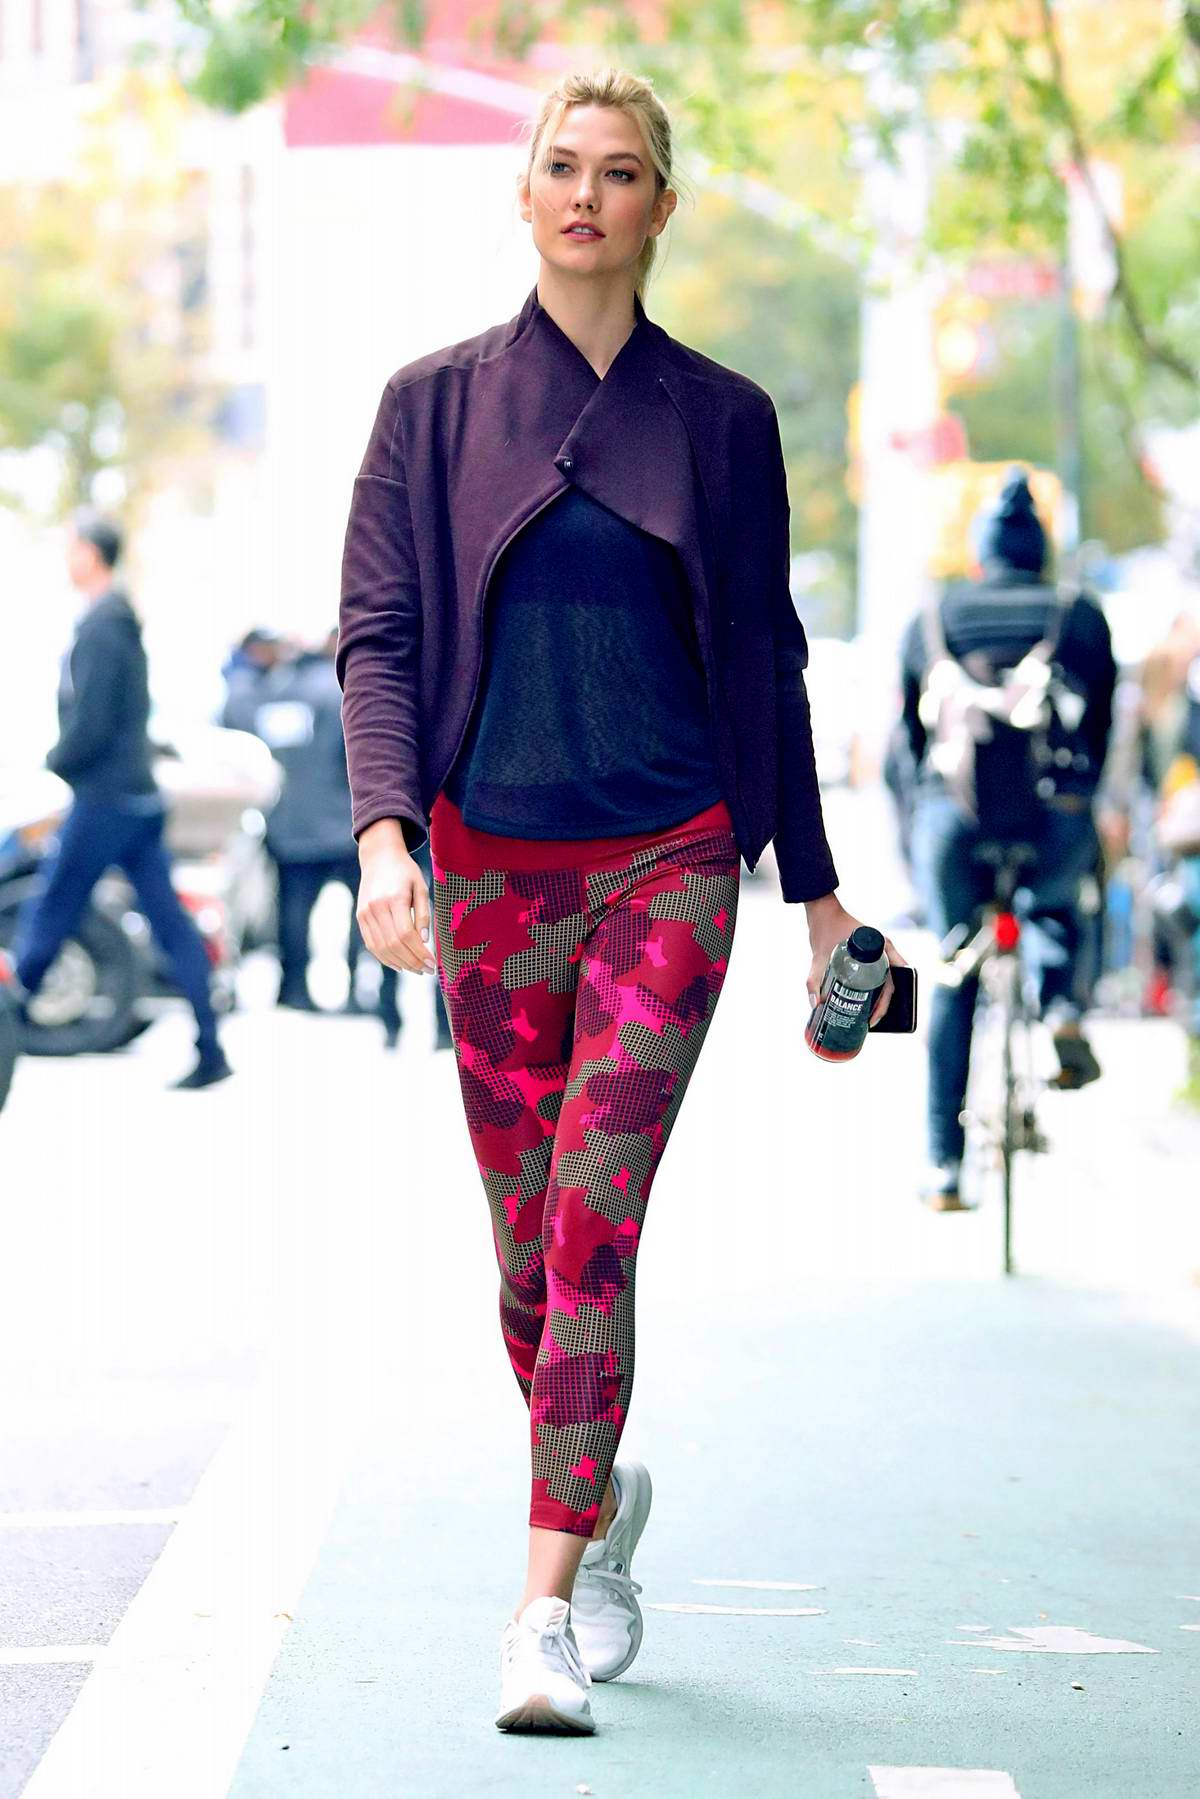 026cb55b609f3 karlie kloss sports a colorful adidas workout gear while out in new york  city-231018_2